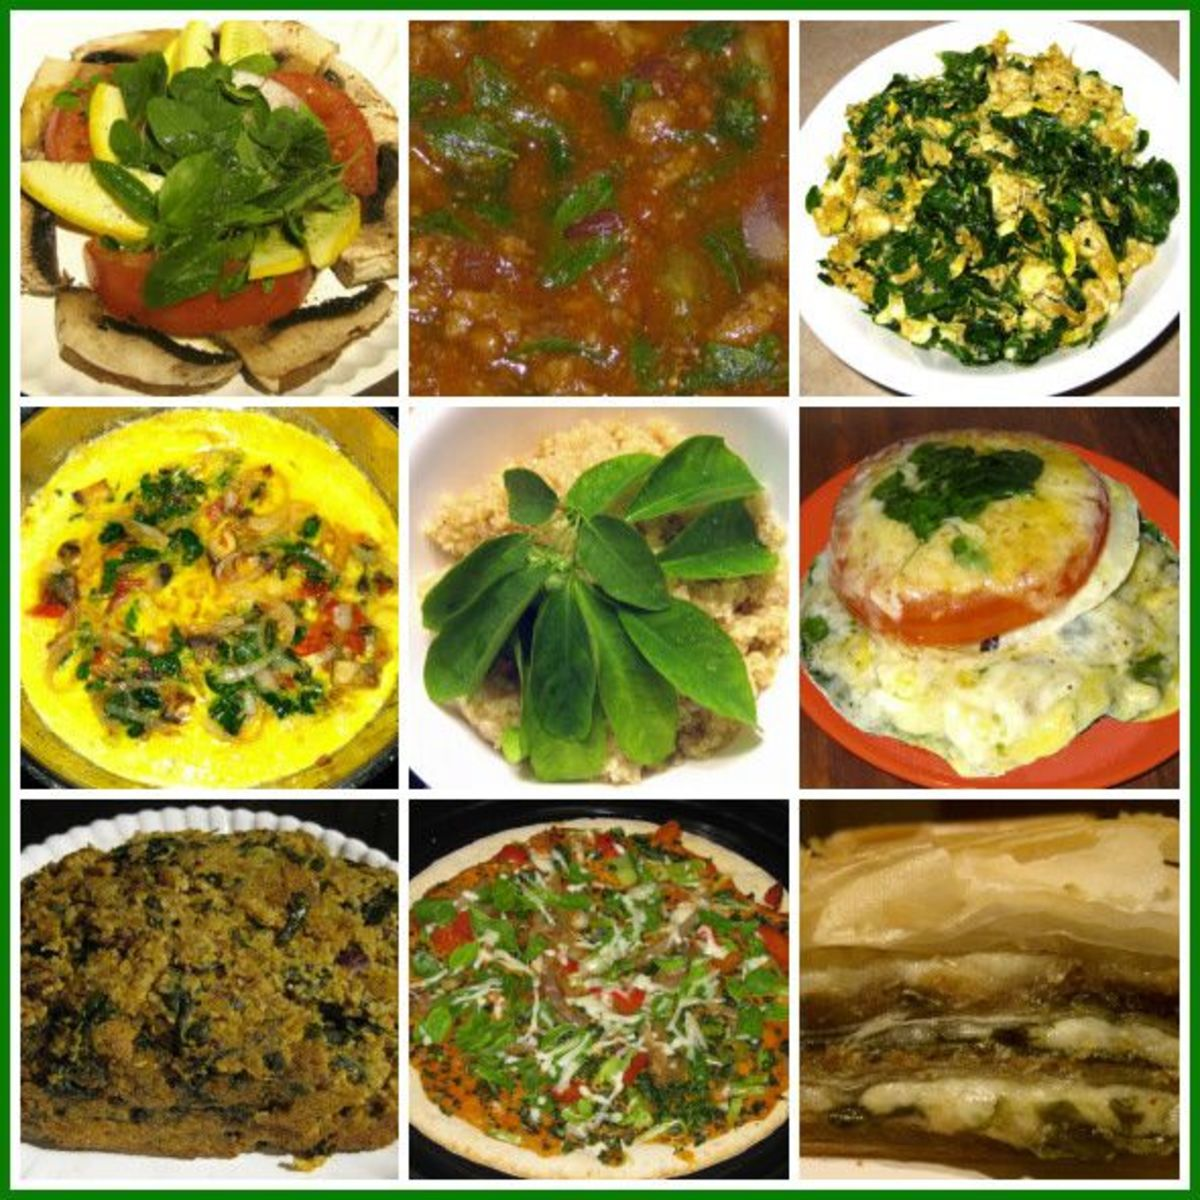 Some of the dishes we create with Moringa